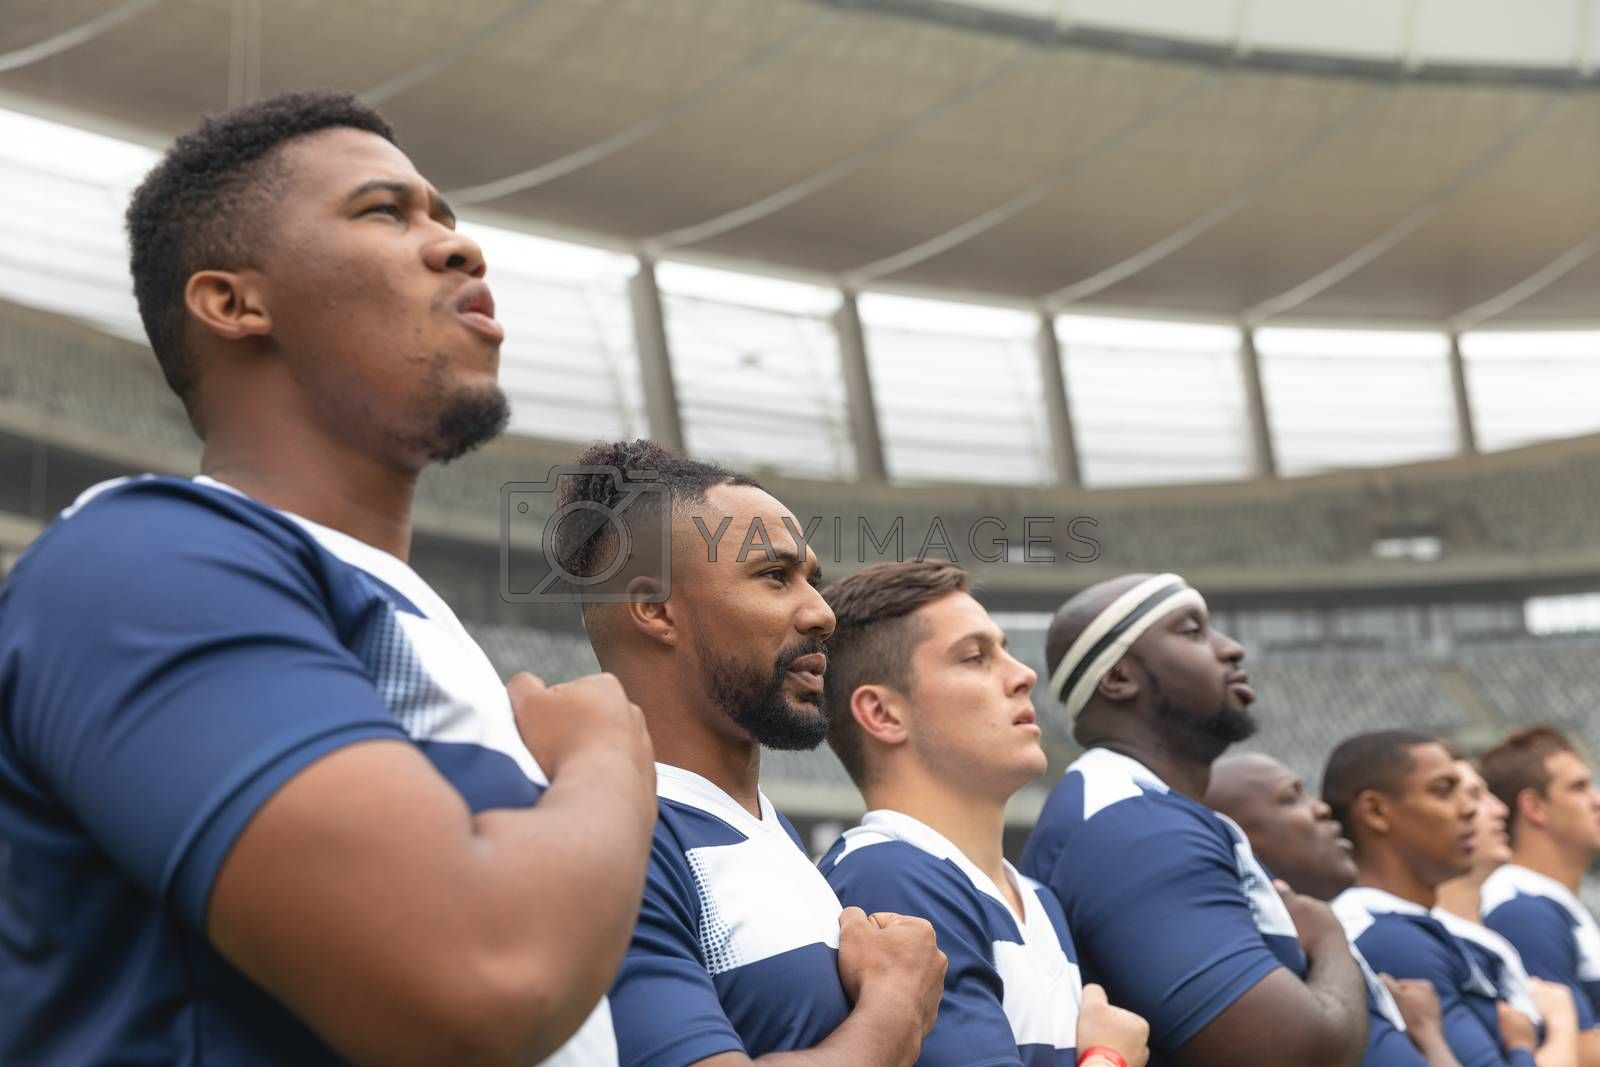 Portrait of group of diverse male rugby players taking pledge together in stadium